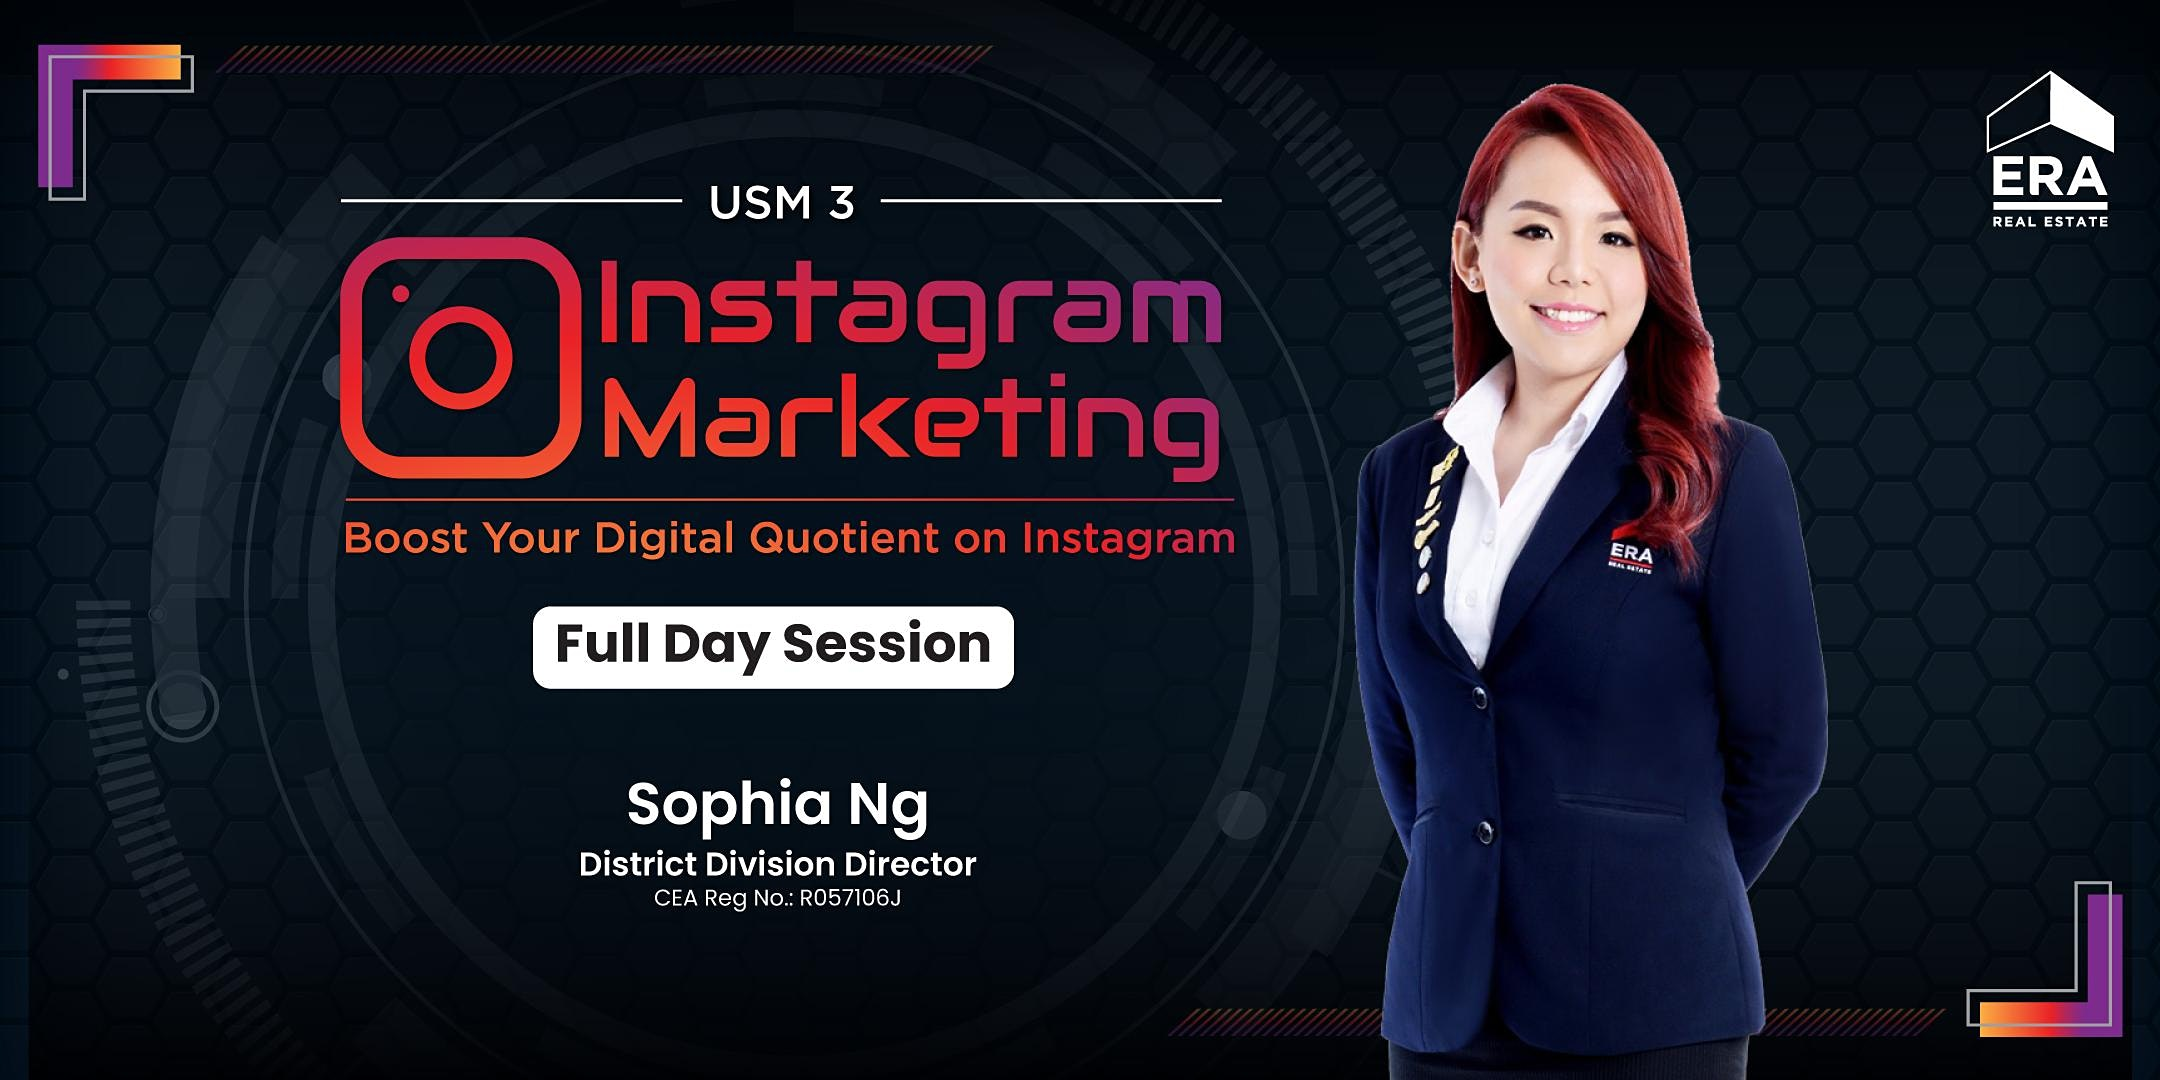 USM 3 : Instagram Marketing